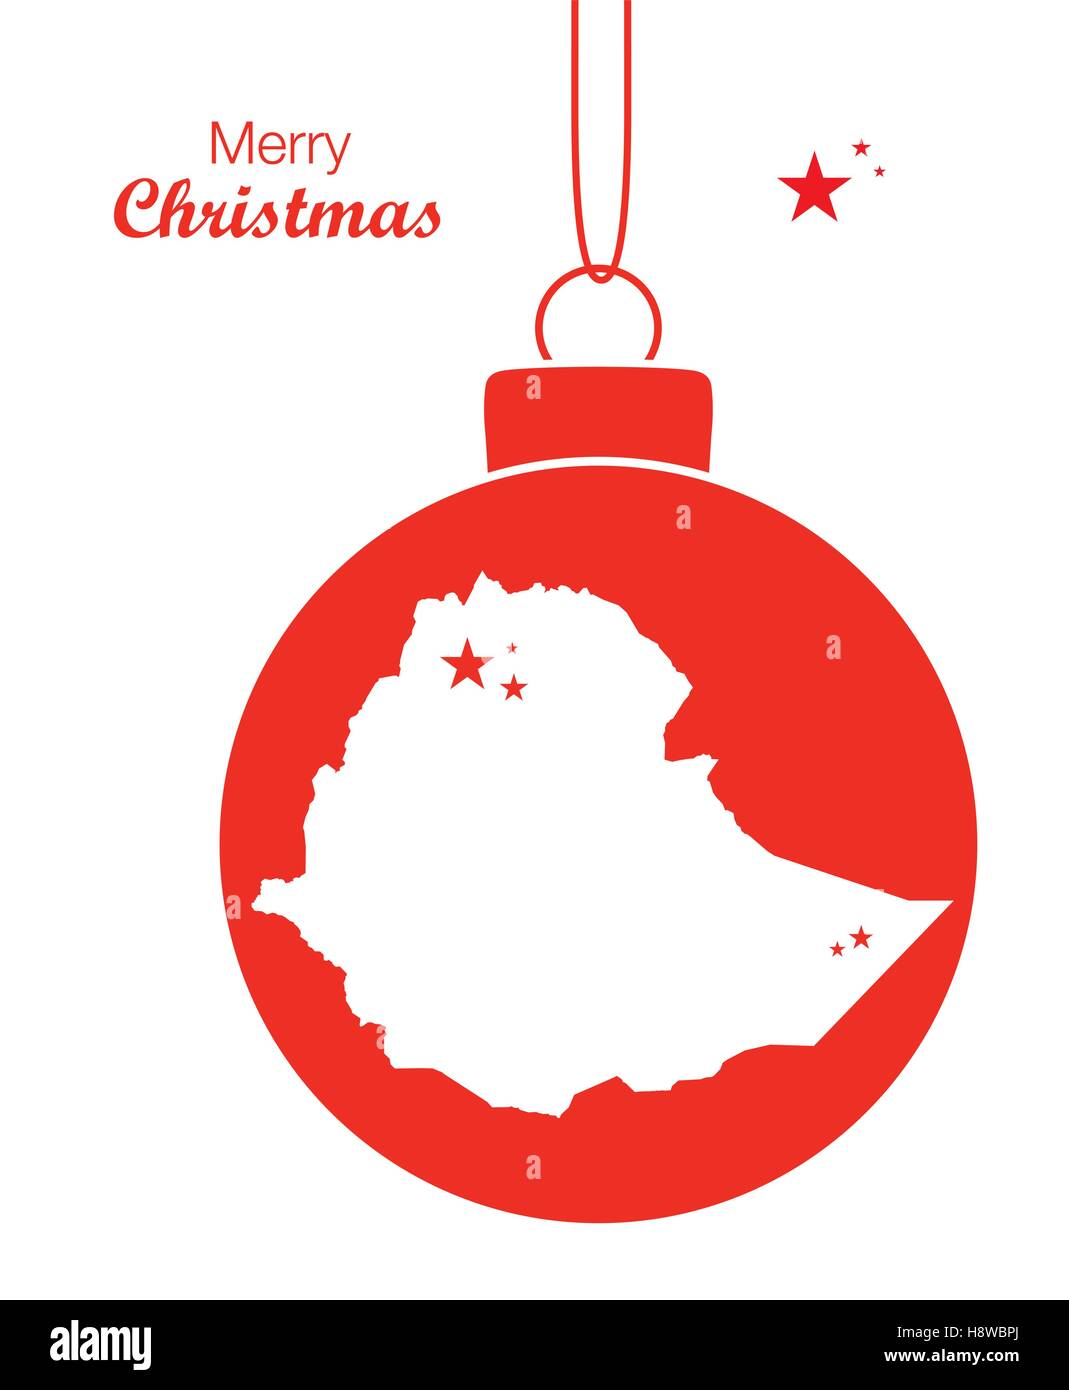 Merry Christmas illustration theme with map of Ethiopia - Stock Vector